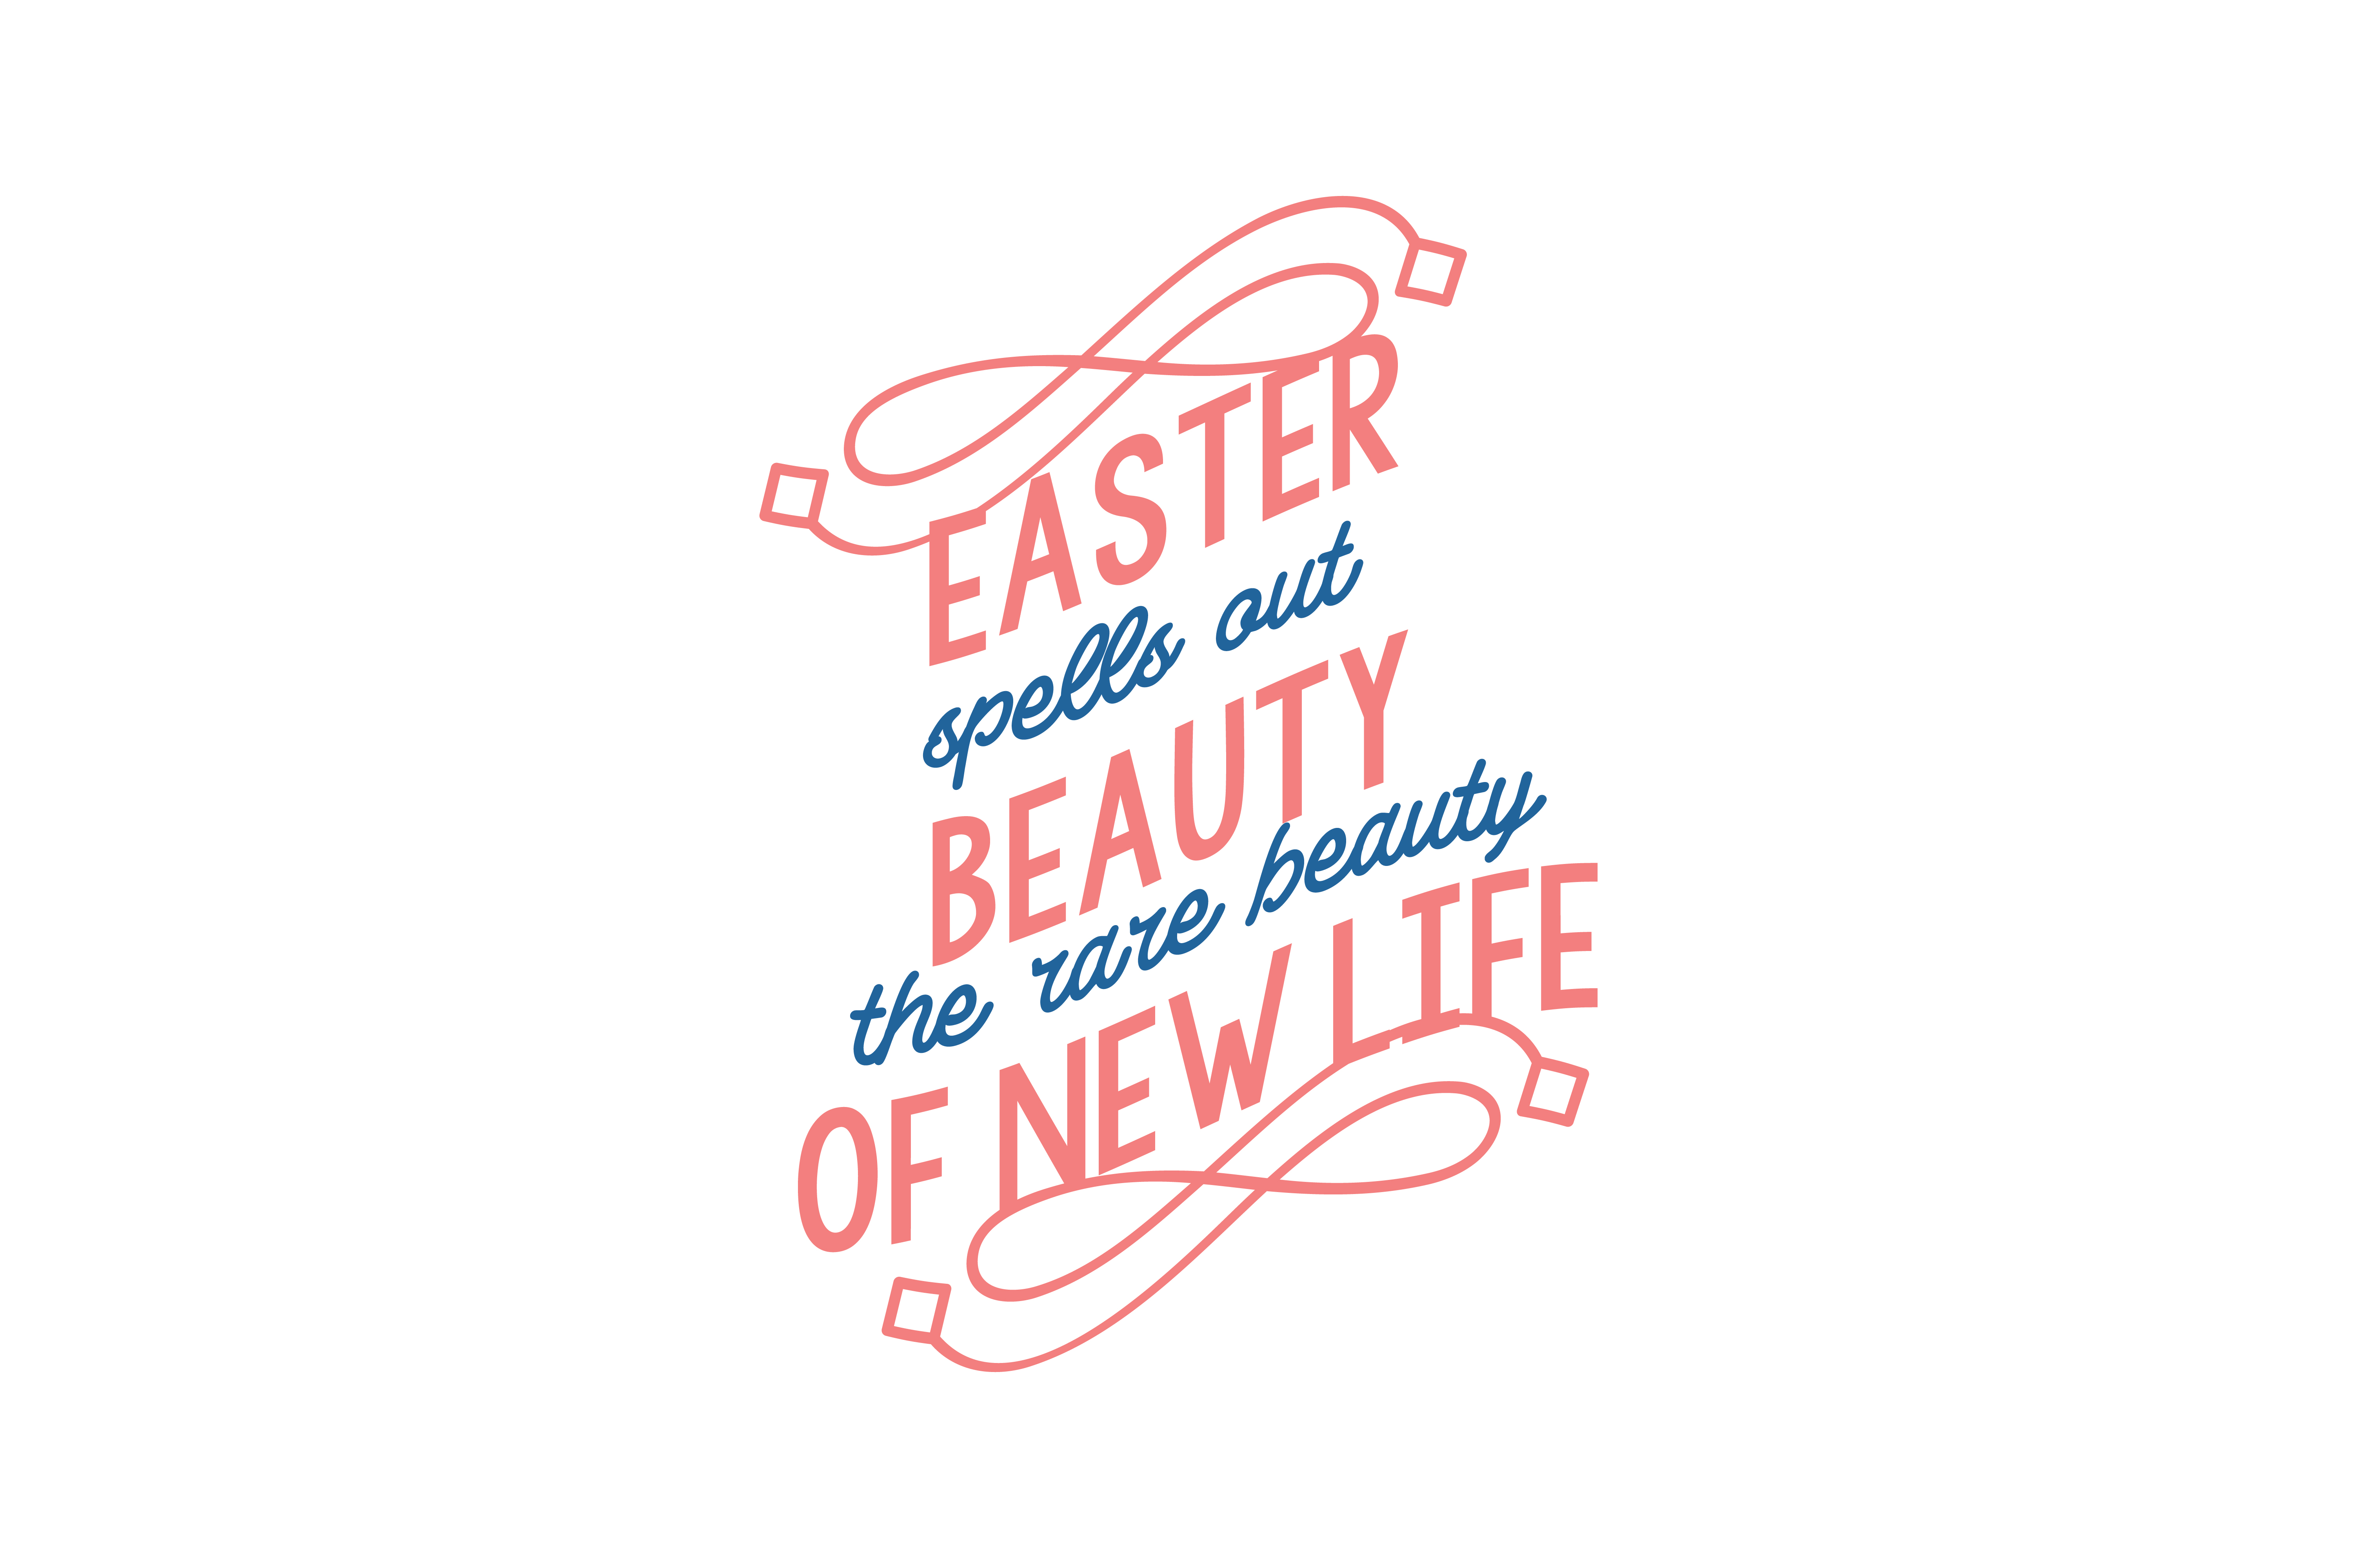 Easter Spells Out Beauty The Rare Beauty Of New Life Quote Svg